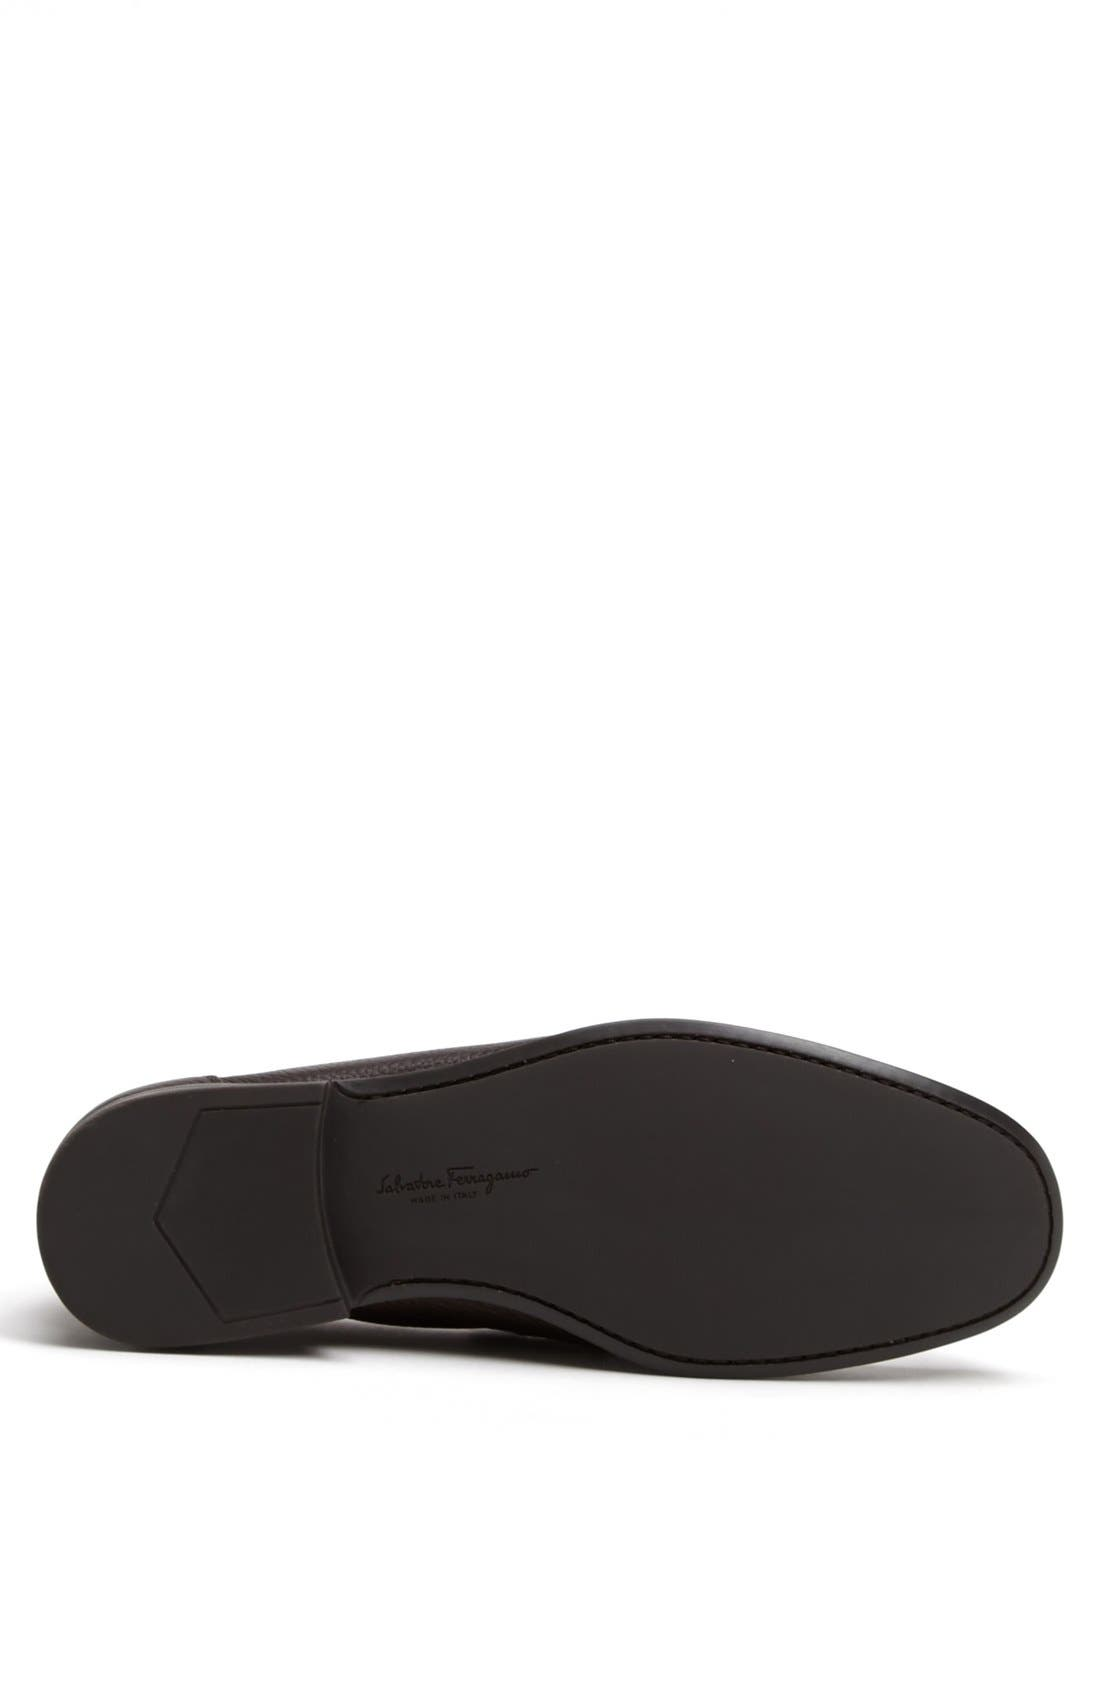 Alternate Image 4  - Salvatore Ferragamo 'Magnifico' Loafer